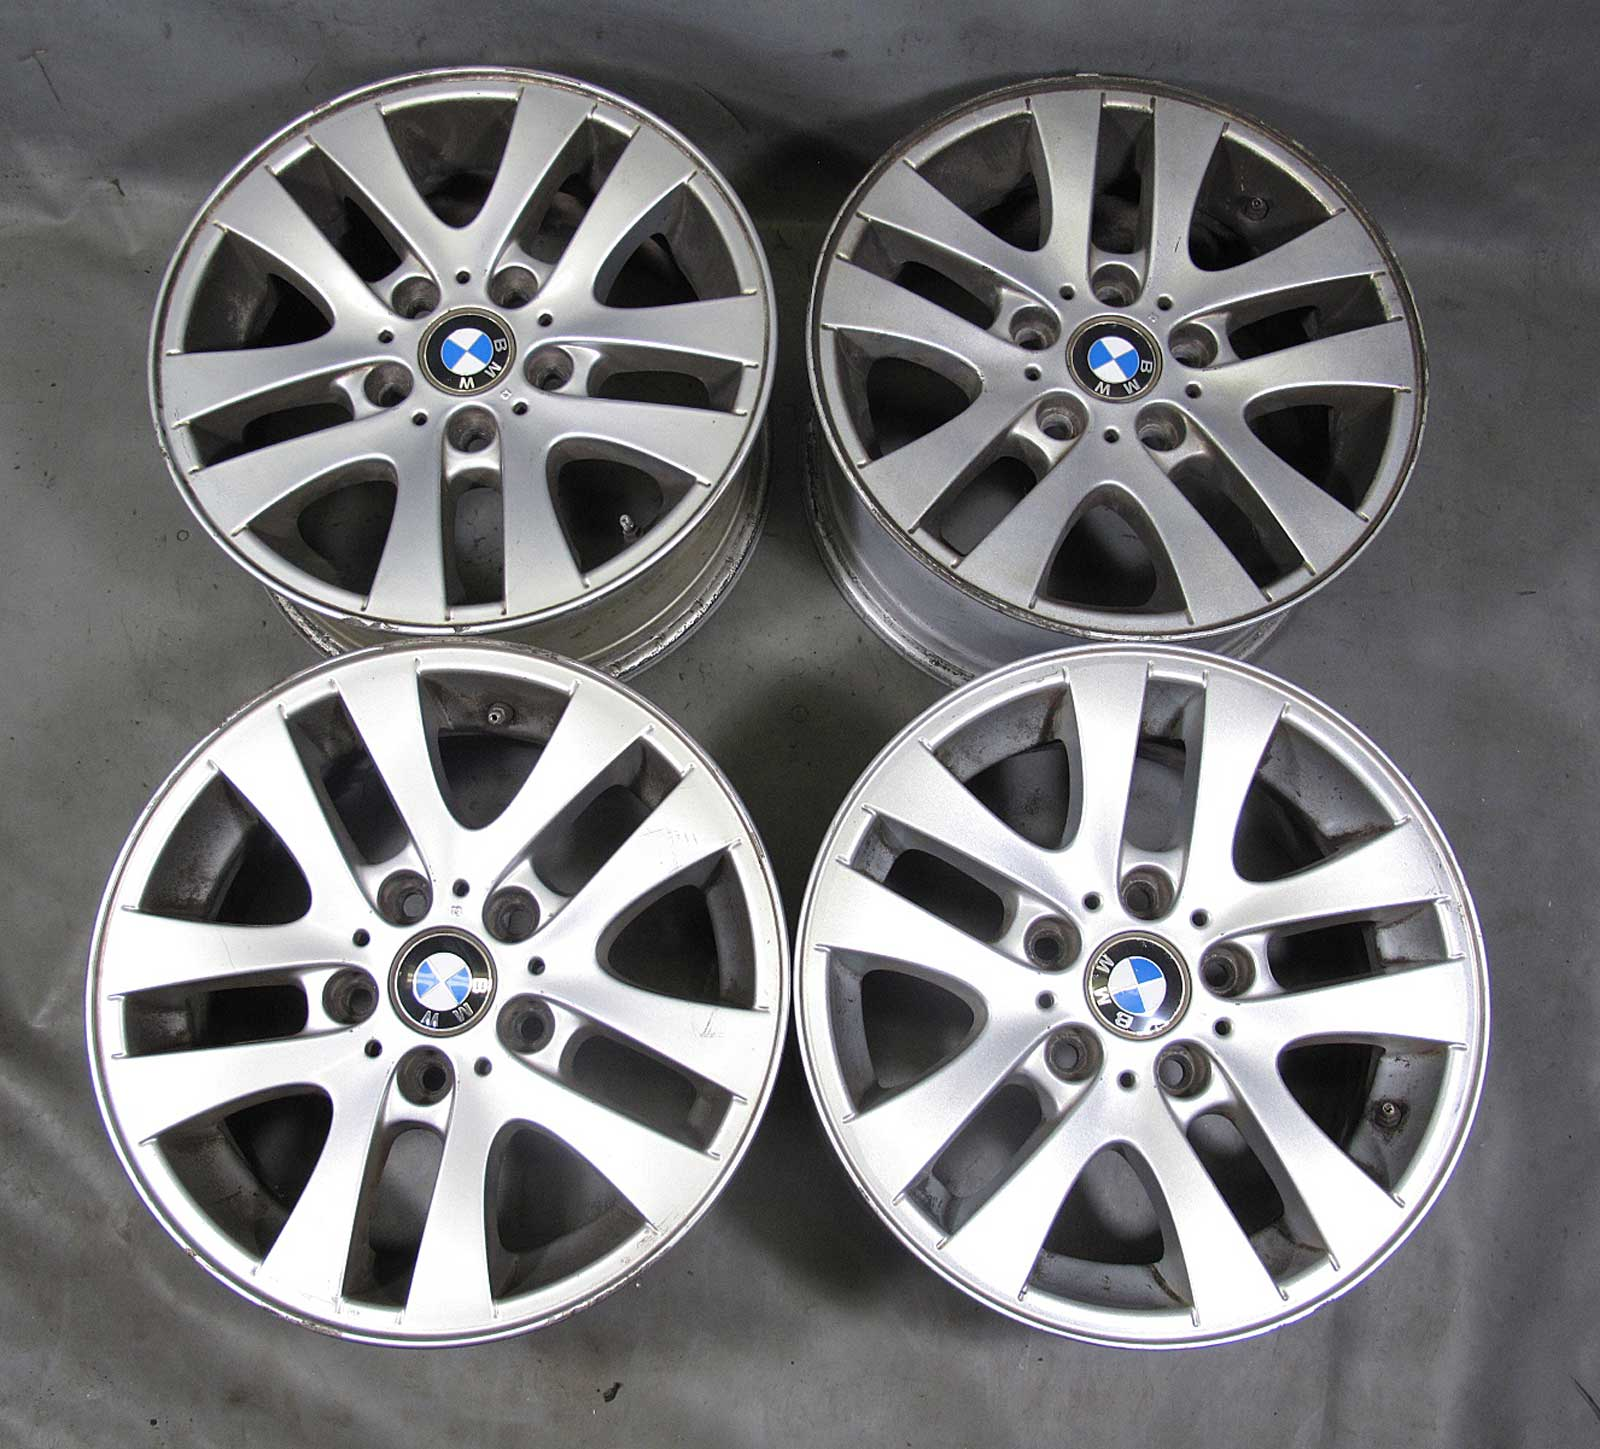 by the make my wheels rim so copied competitors competition has wheel style zcp opinion best been better in look many dsc and styles perfektadrenalin looking bmw much